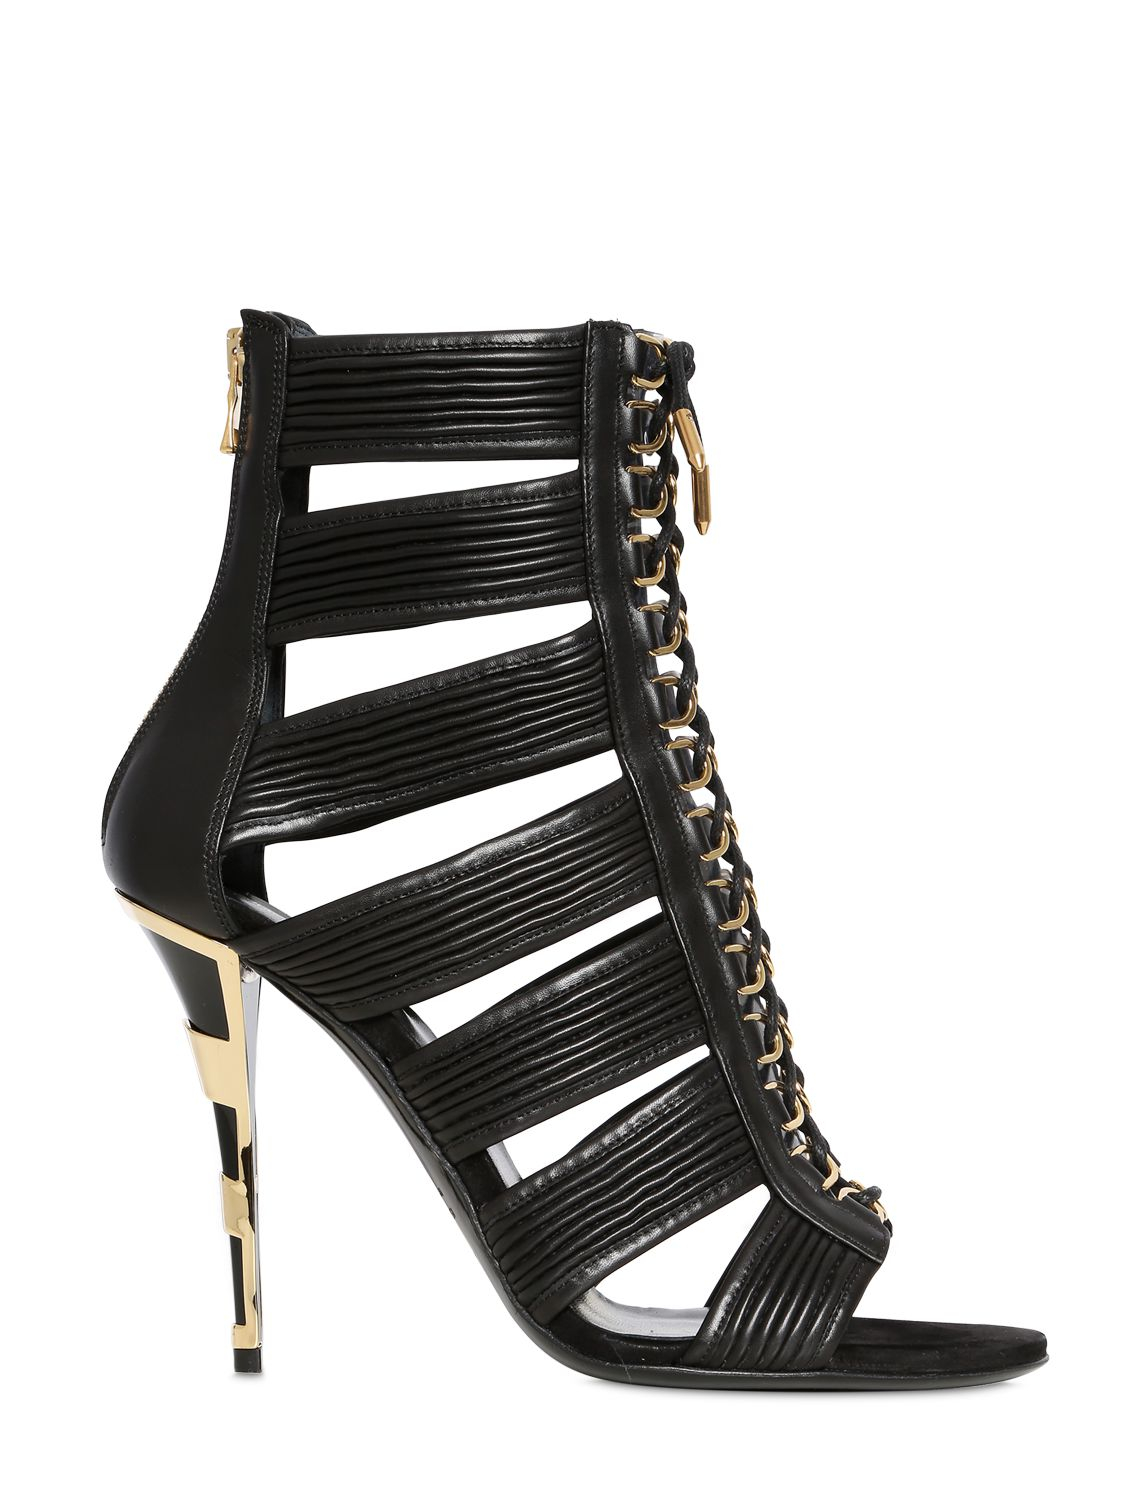 Balmain 110mm Hopi Leather Cage Sandals In Black Lyst